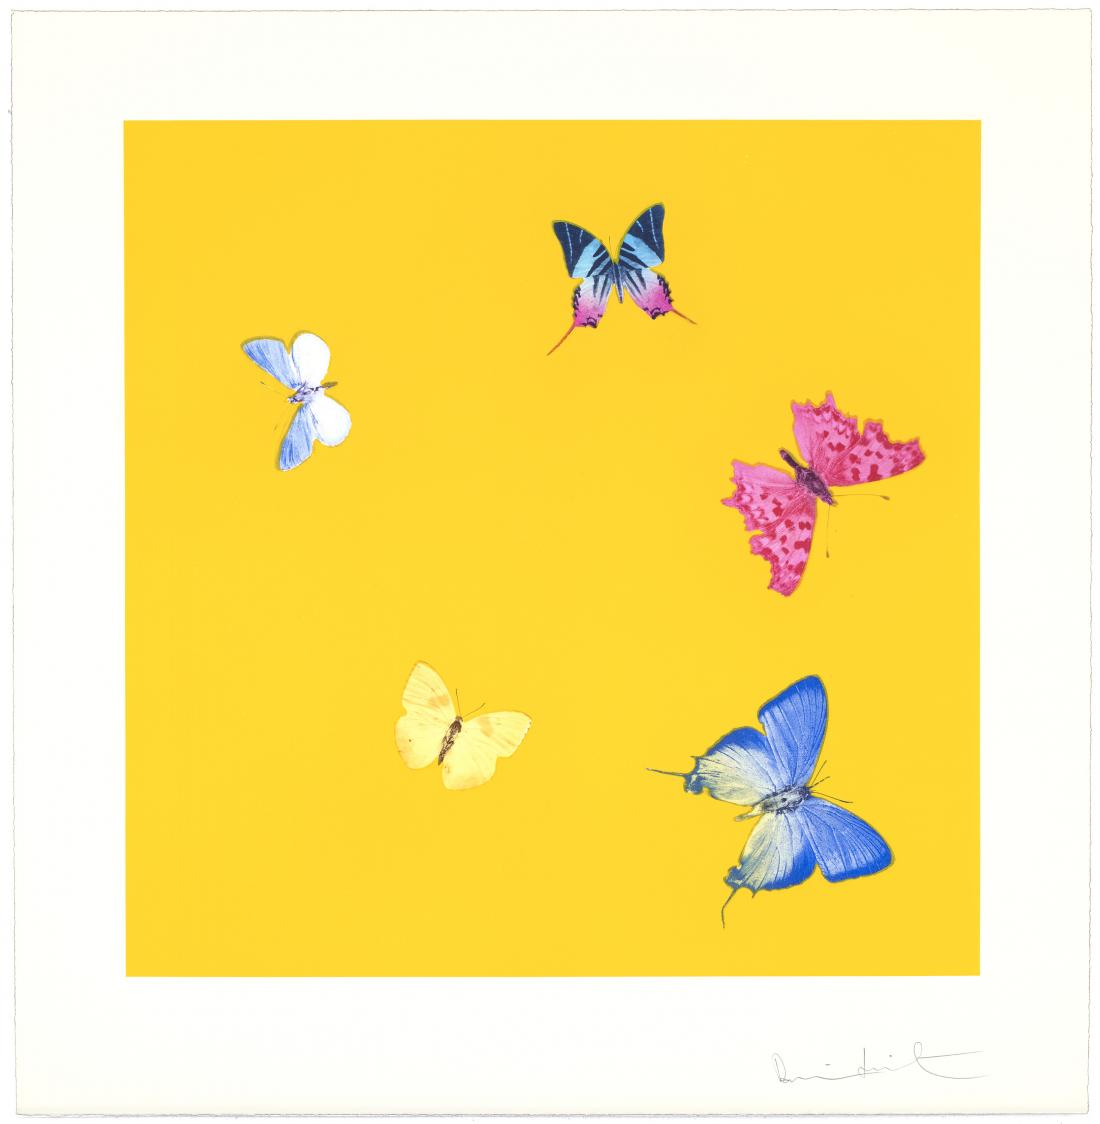 Sweet Disorder by Damien Hirst